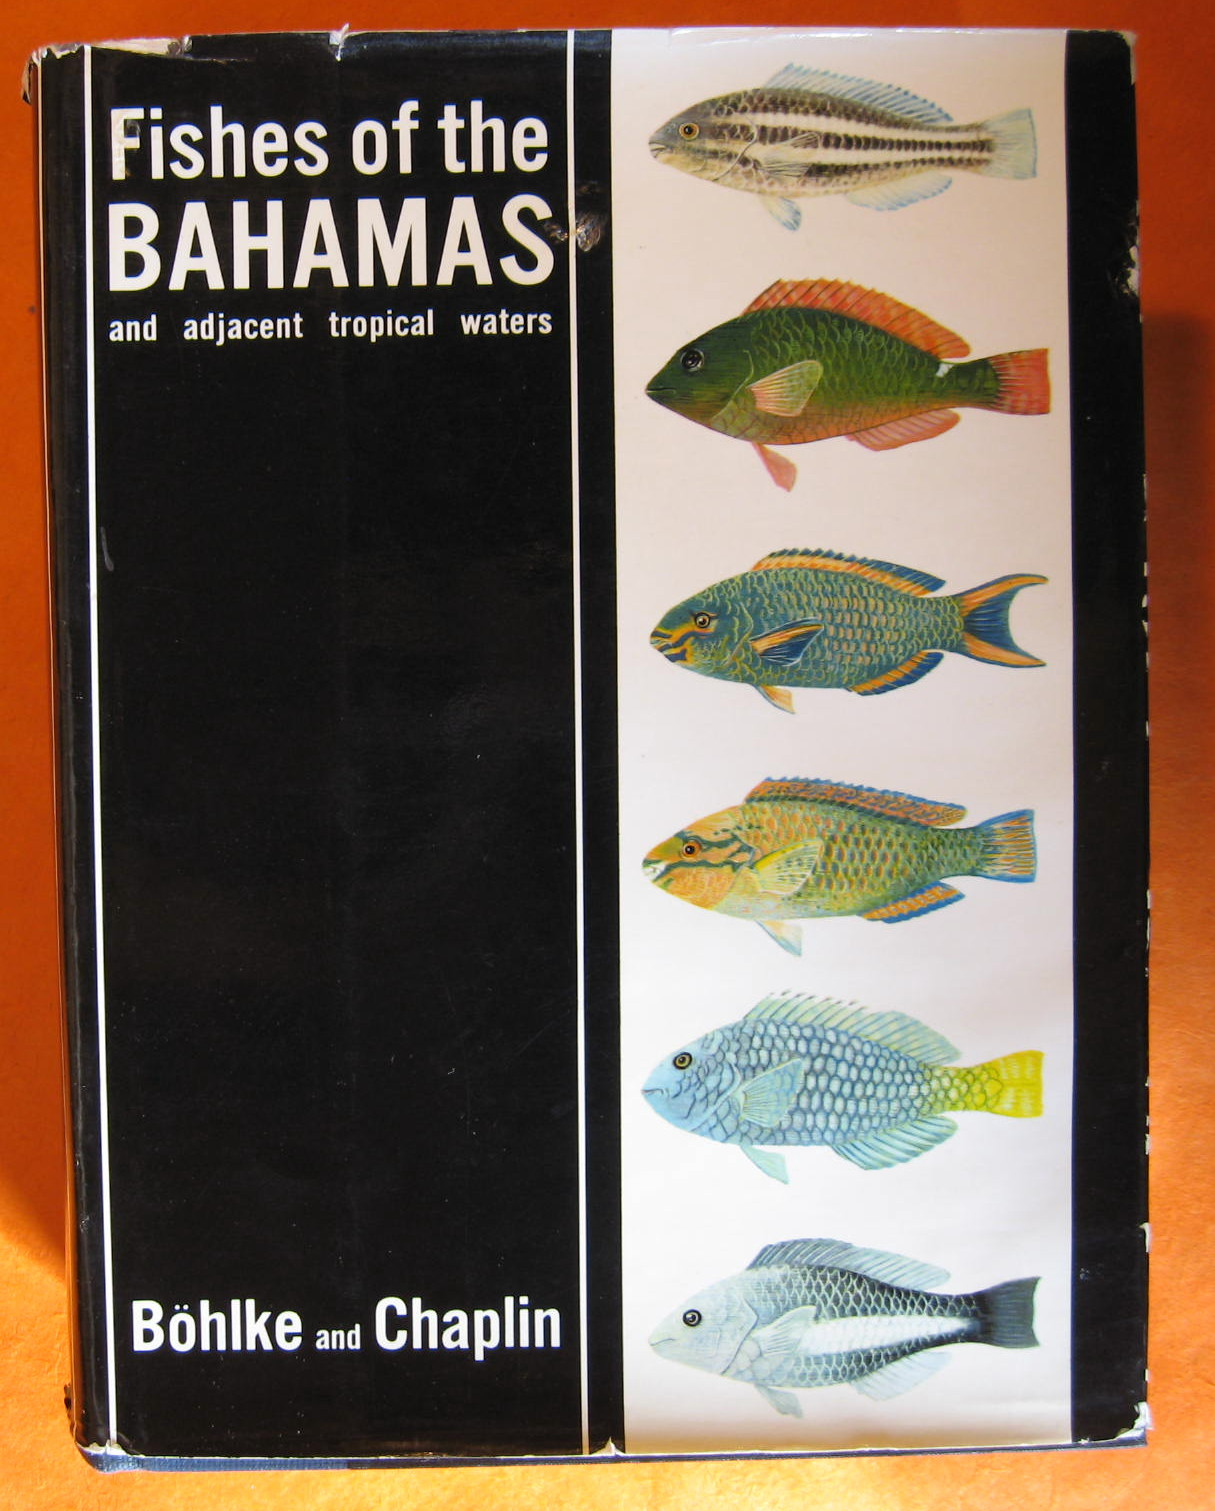 Fishes of the Bahamas and Adjacent Tropical Waters, Bohlke, James, E. & Chaplin, Charles C.G.